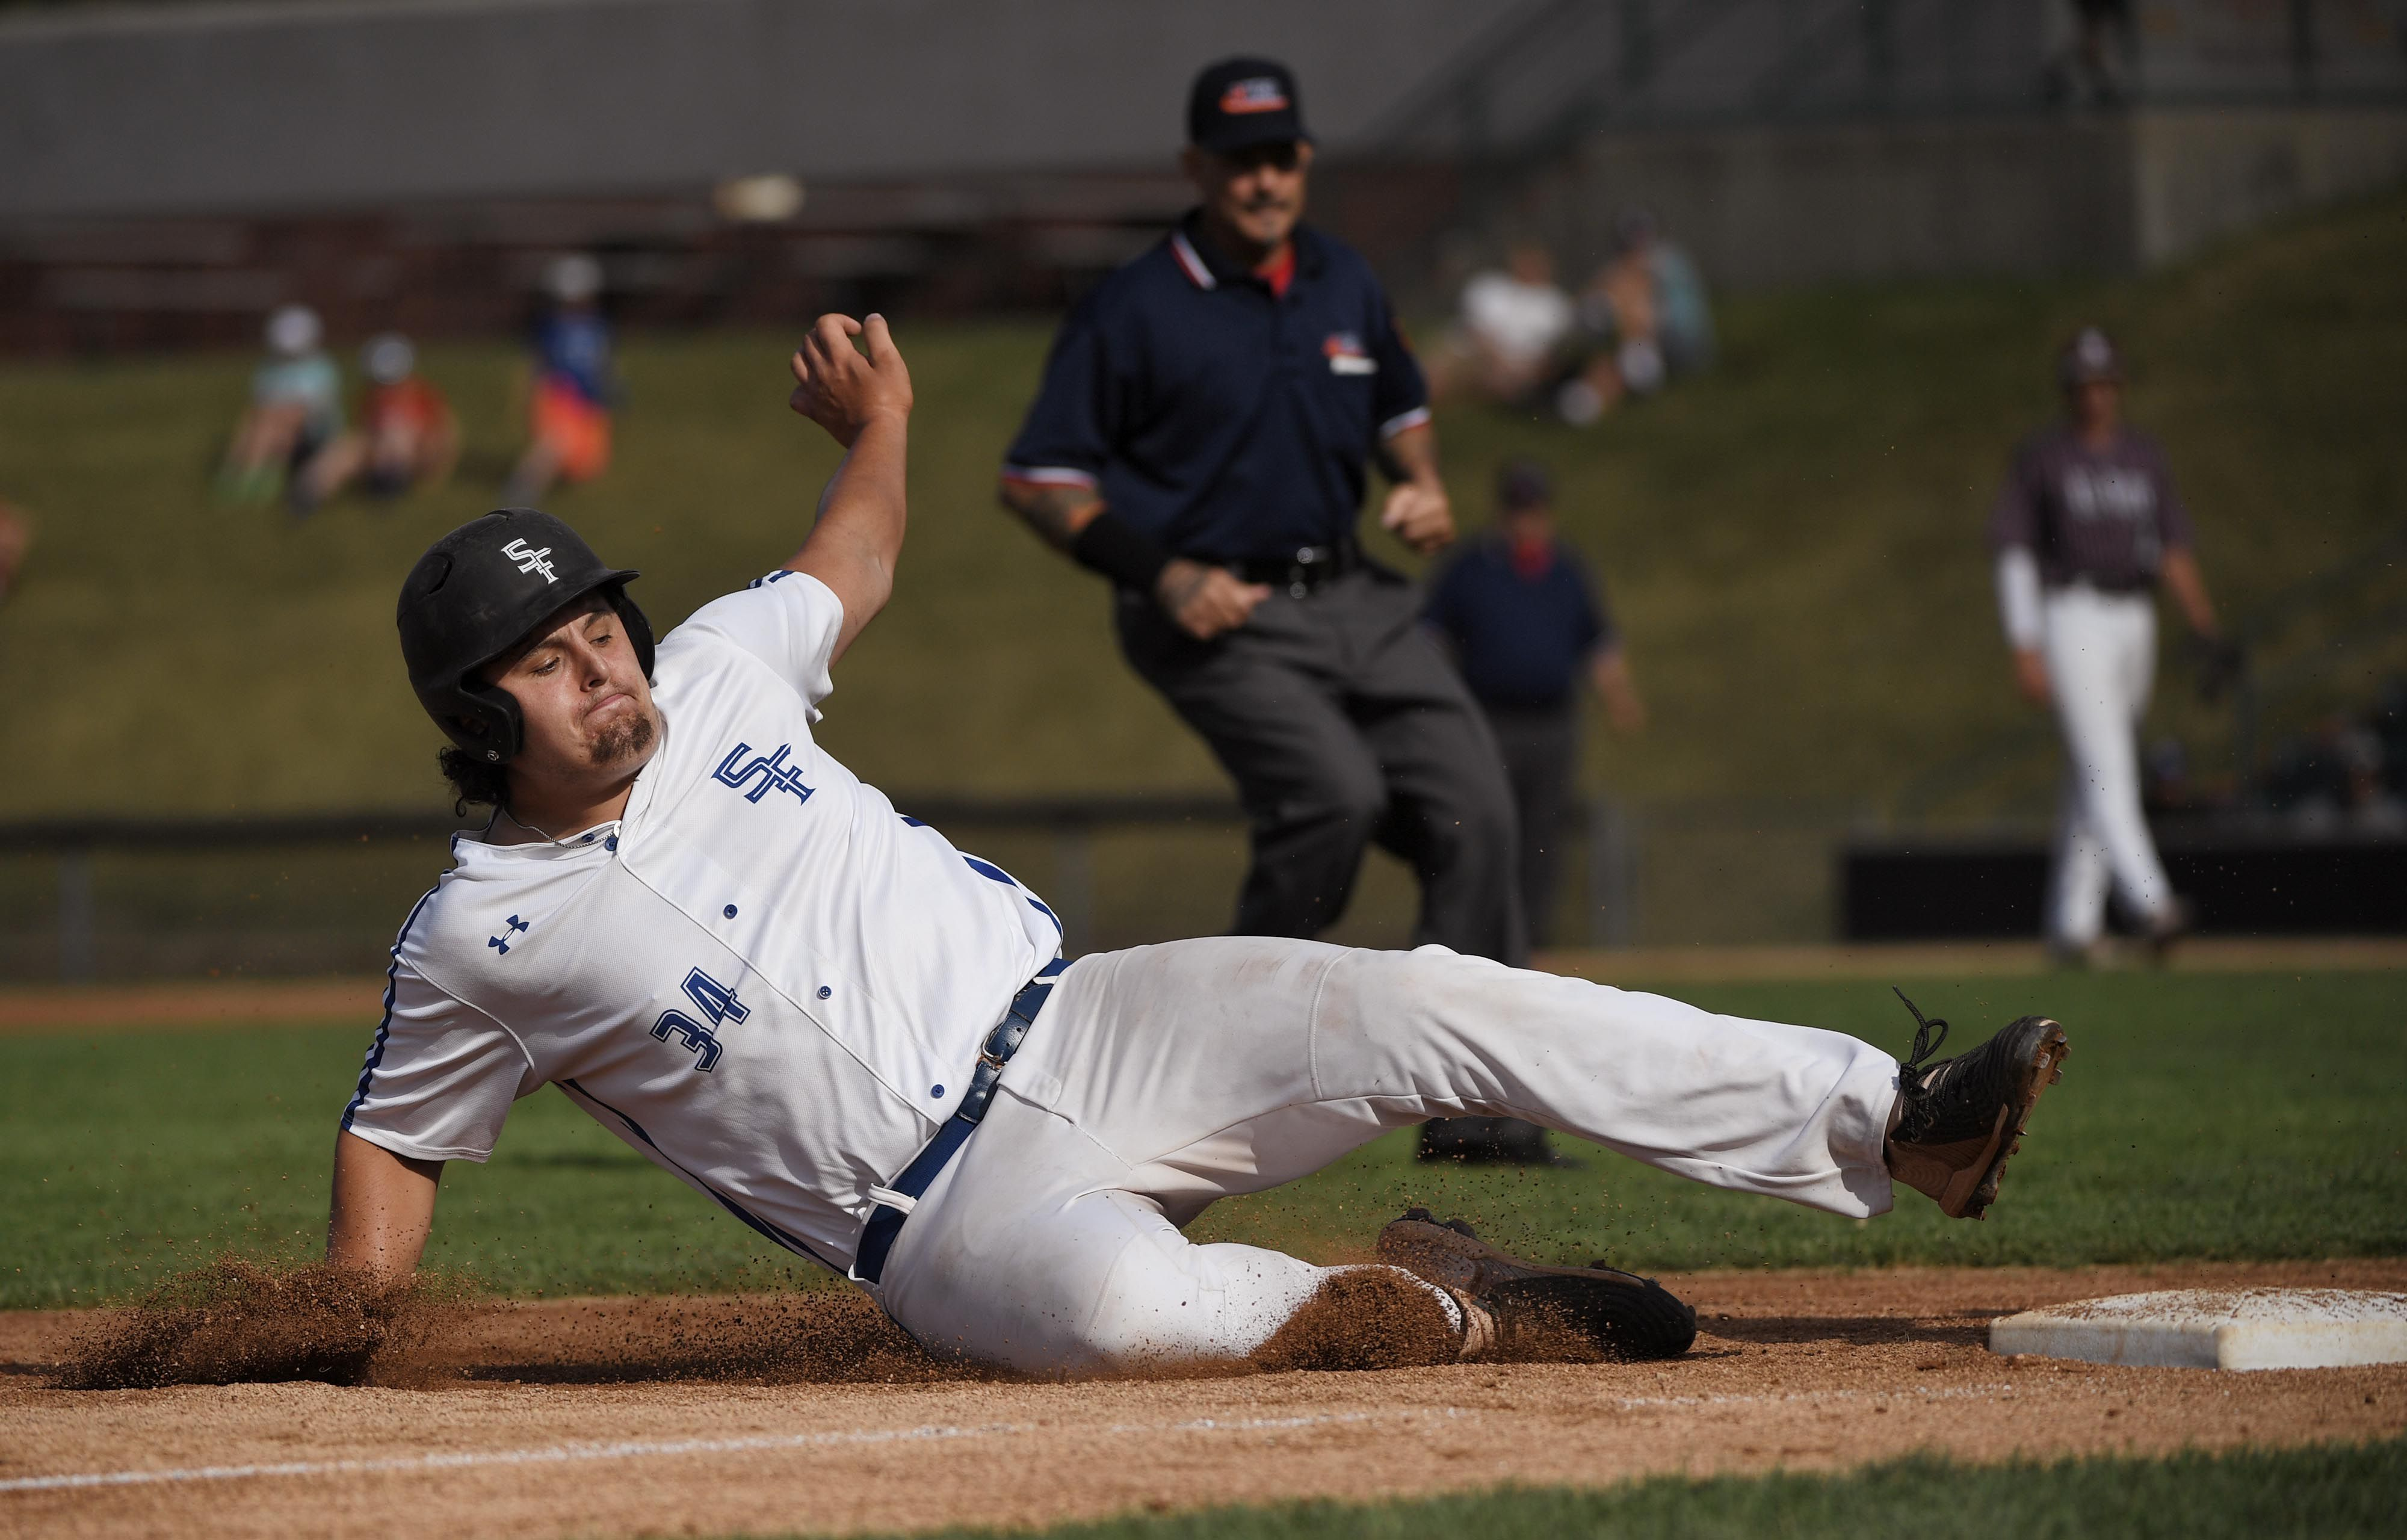 St. Francis' TJ McMillen slides into third base on a passed ball from Prairie Ridge in a Class 3A baseball super sectional at Wintrust Field in Schaumburg Monday, June 14, 2021.